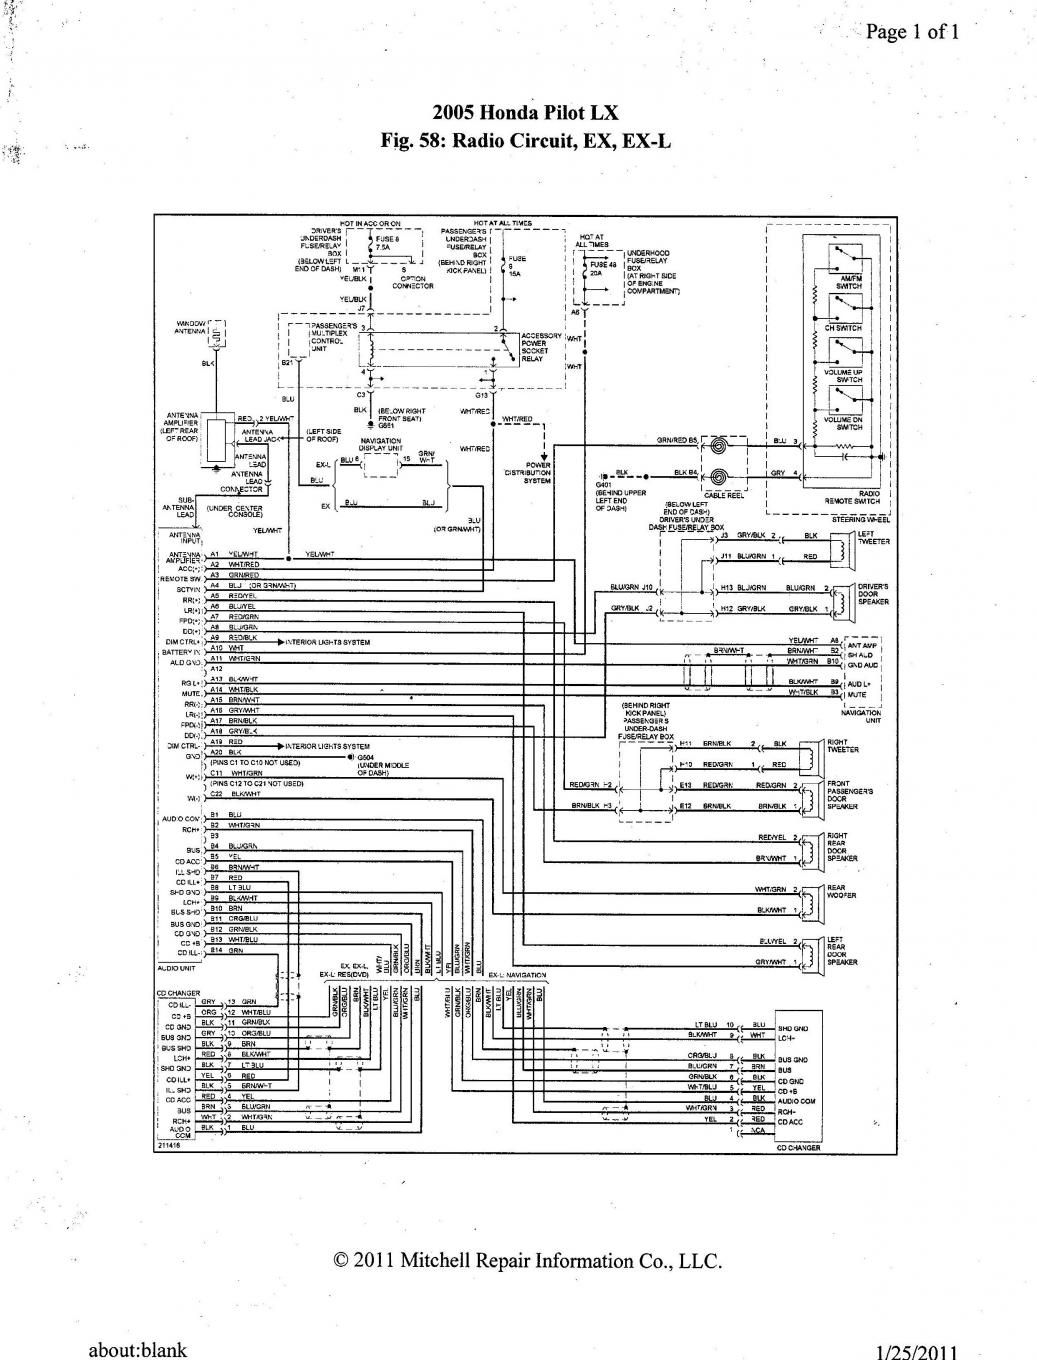 2003 Honda Pilot Radio Wiring Diagram Not Lossing 2011 Eclipse Wire Harness Third Level Rh 2 16 11 Jacobwinterstein Com Chevy Tahoe Engine